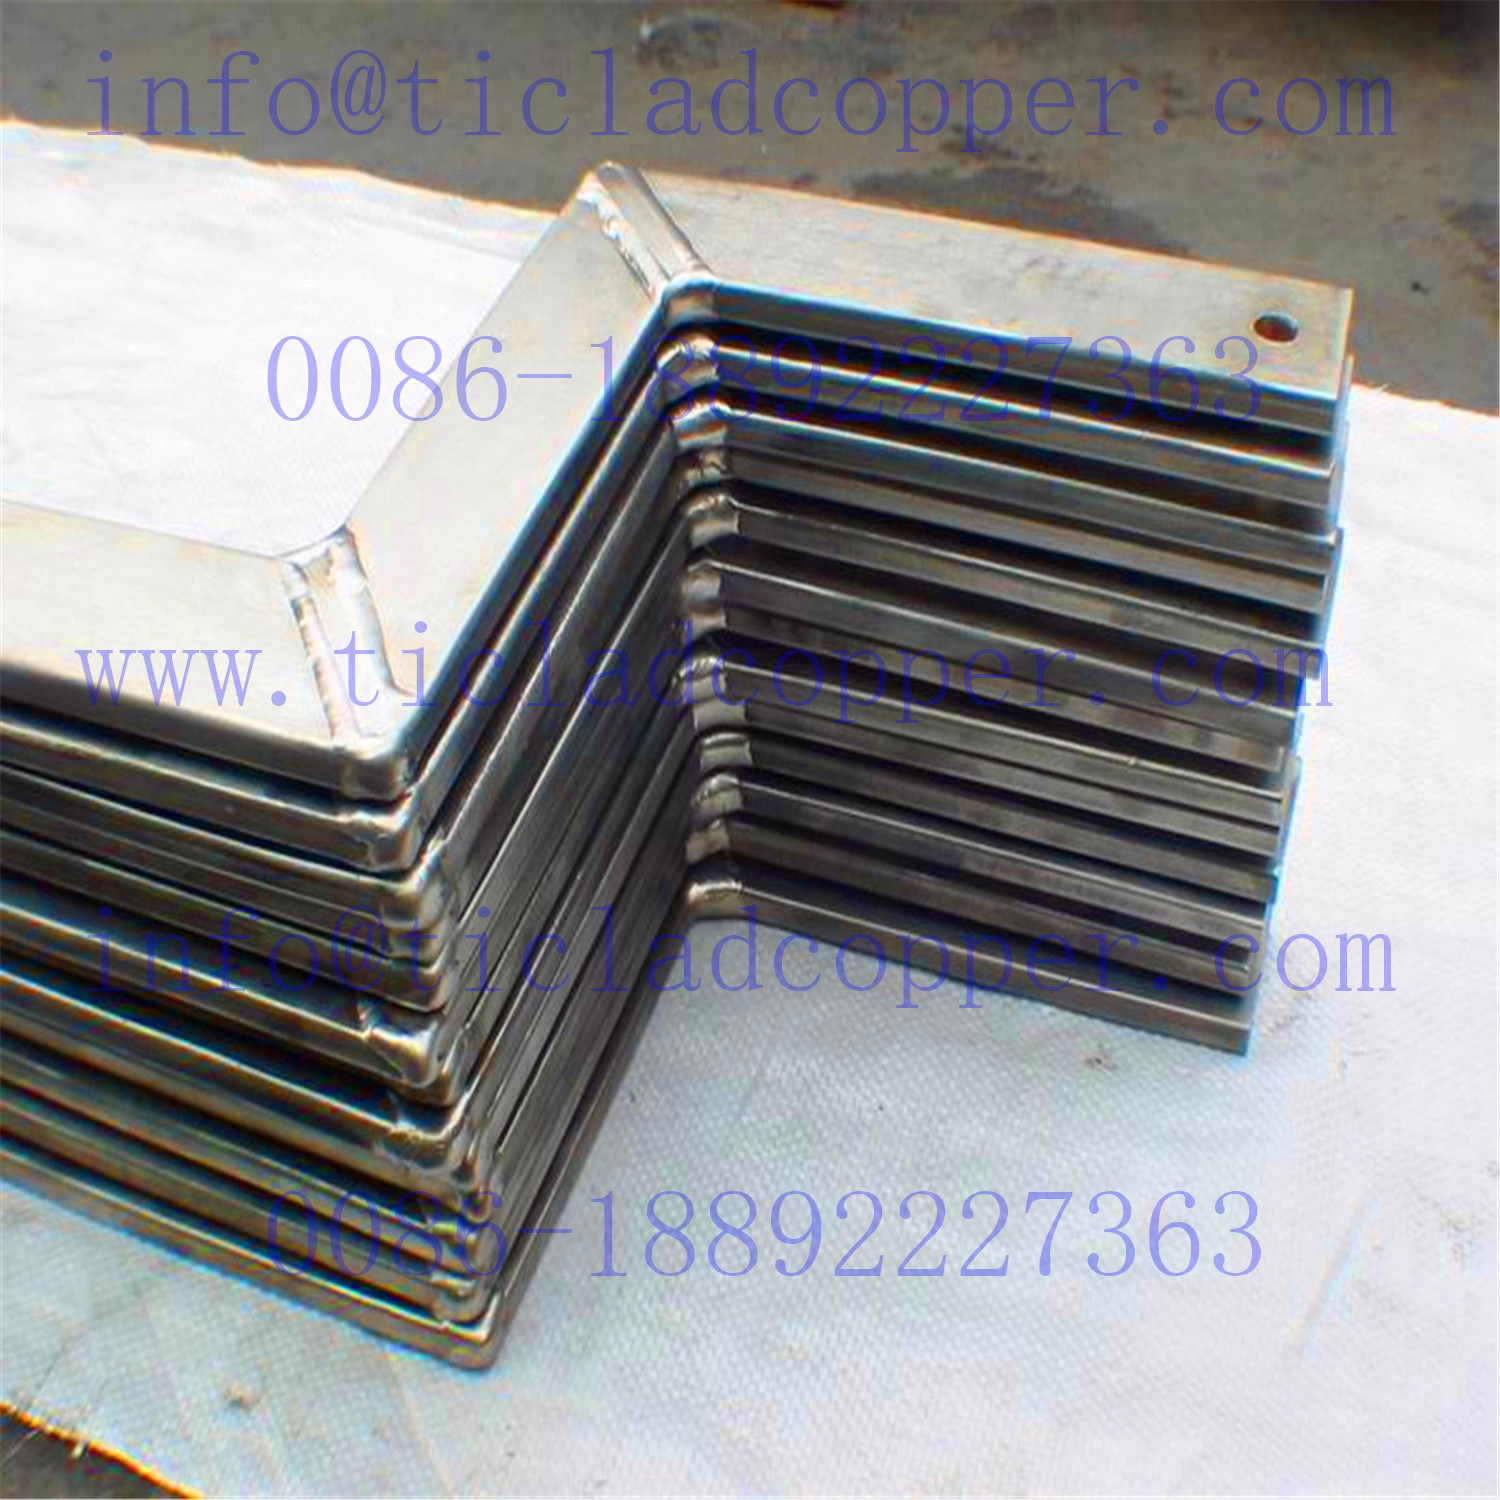 Titanium Clad Copper Welded Assembly Rod for Continuous Coating Lines